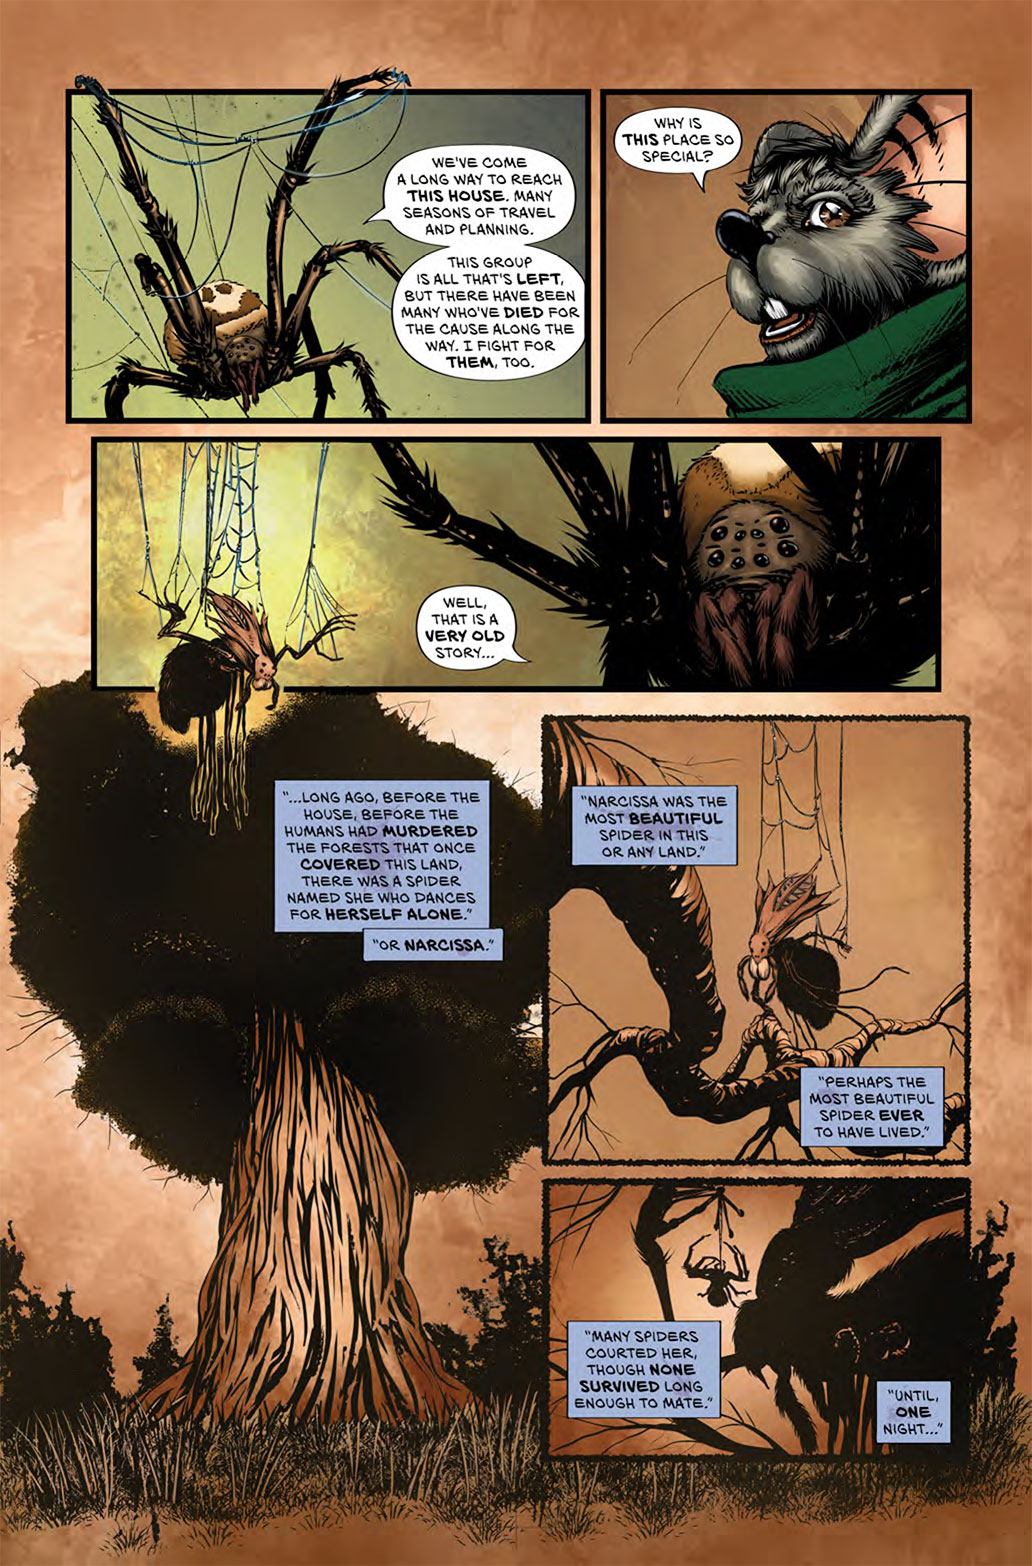 Fun page from Wretched Things #2. A story within a story.